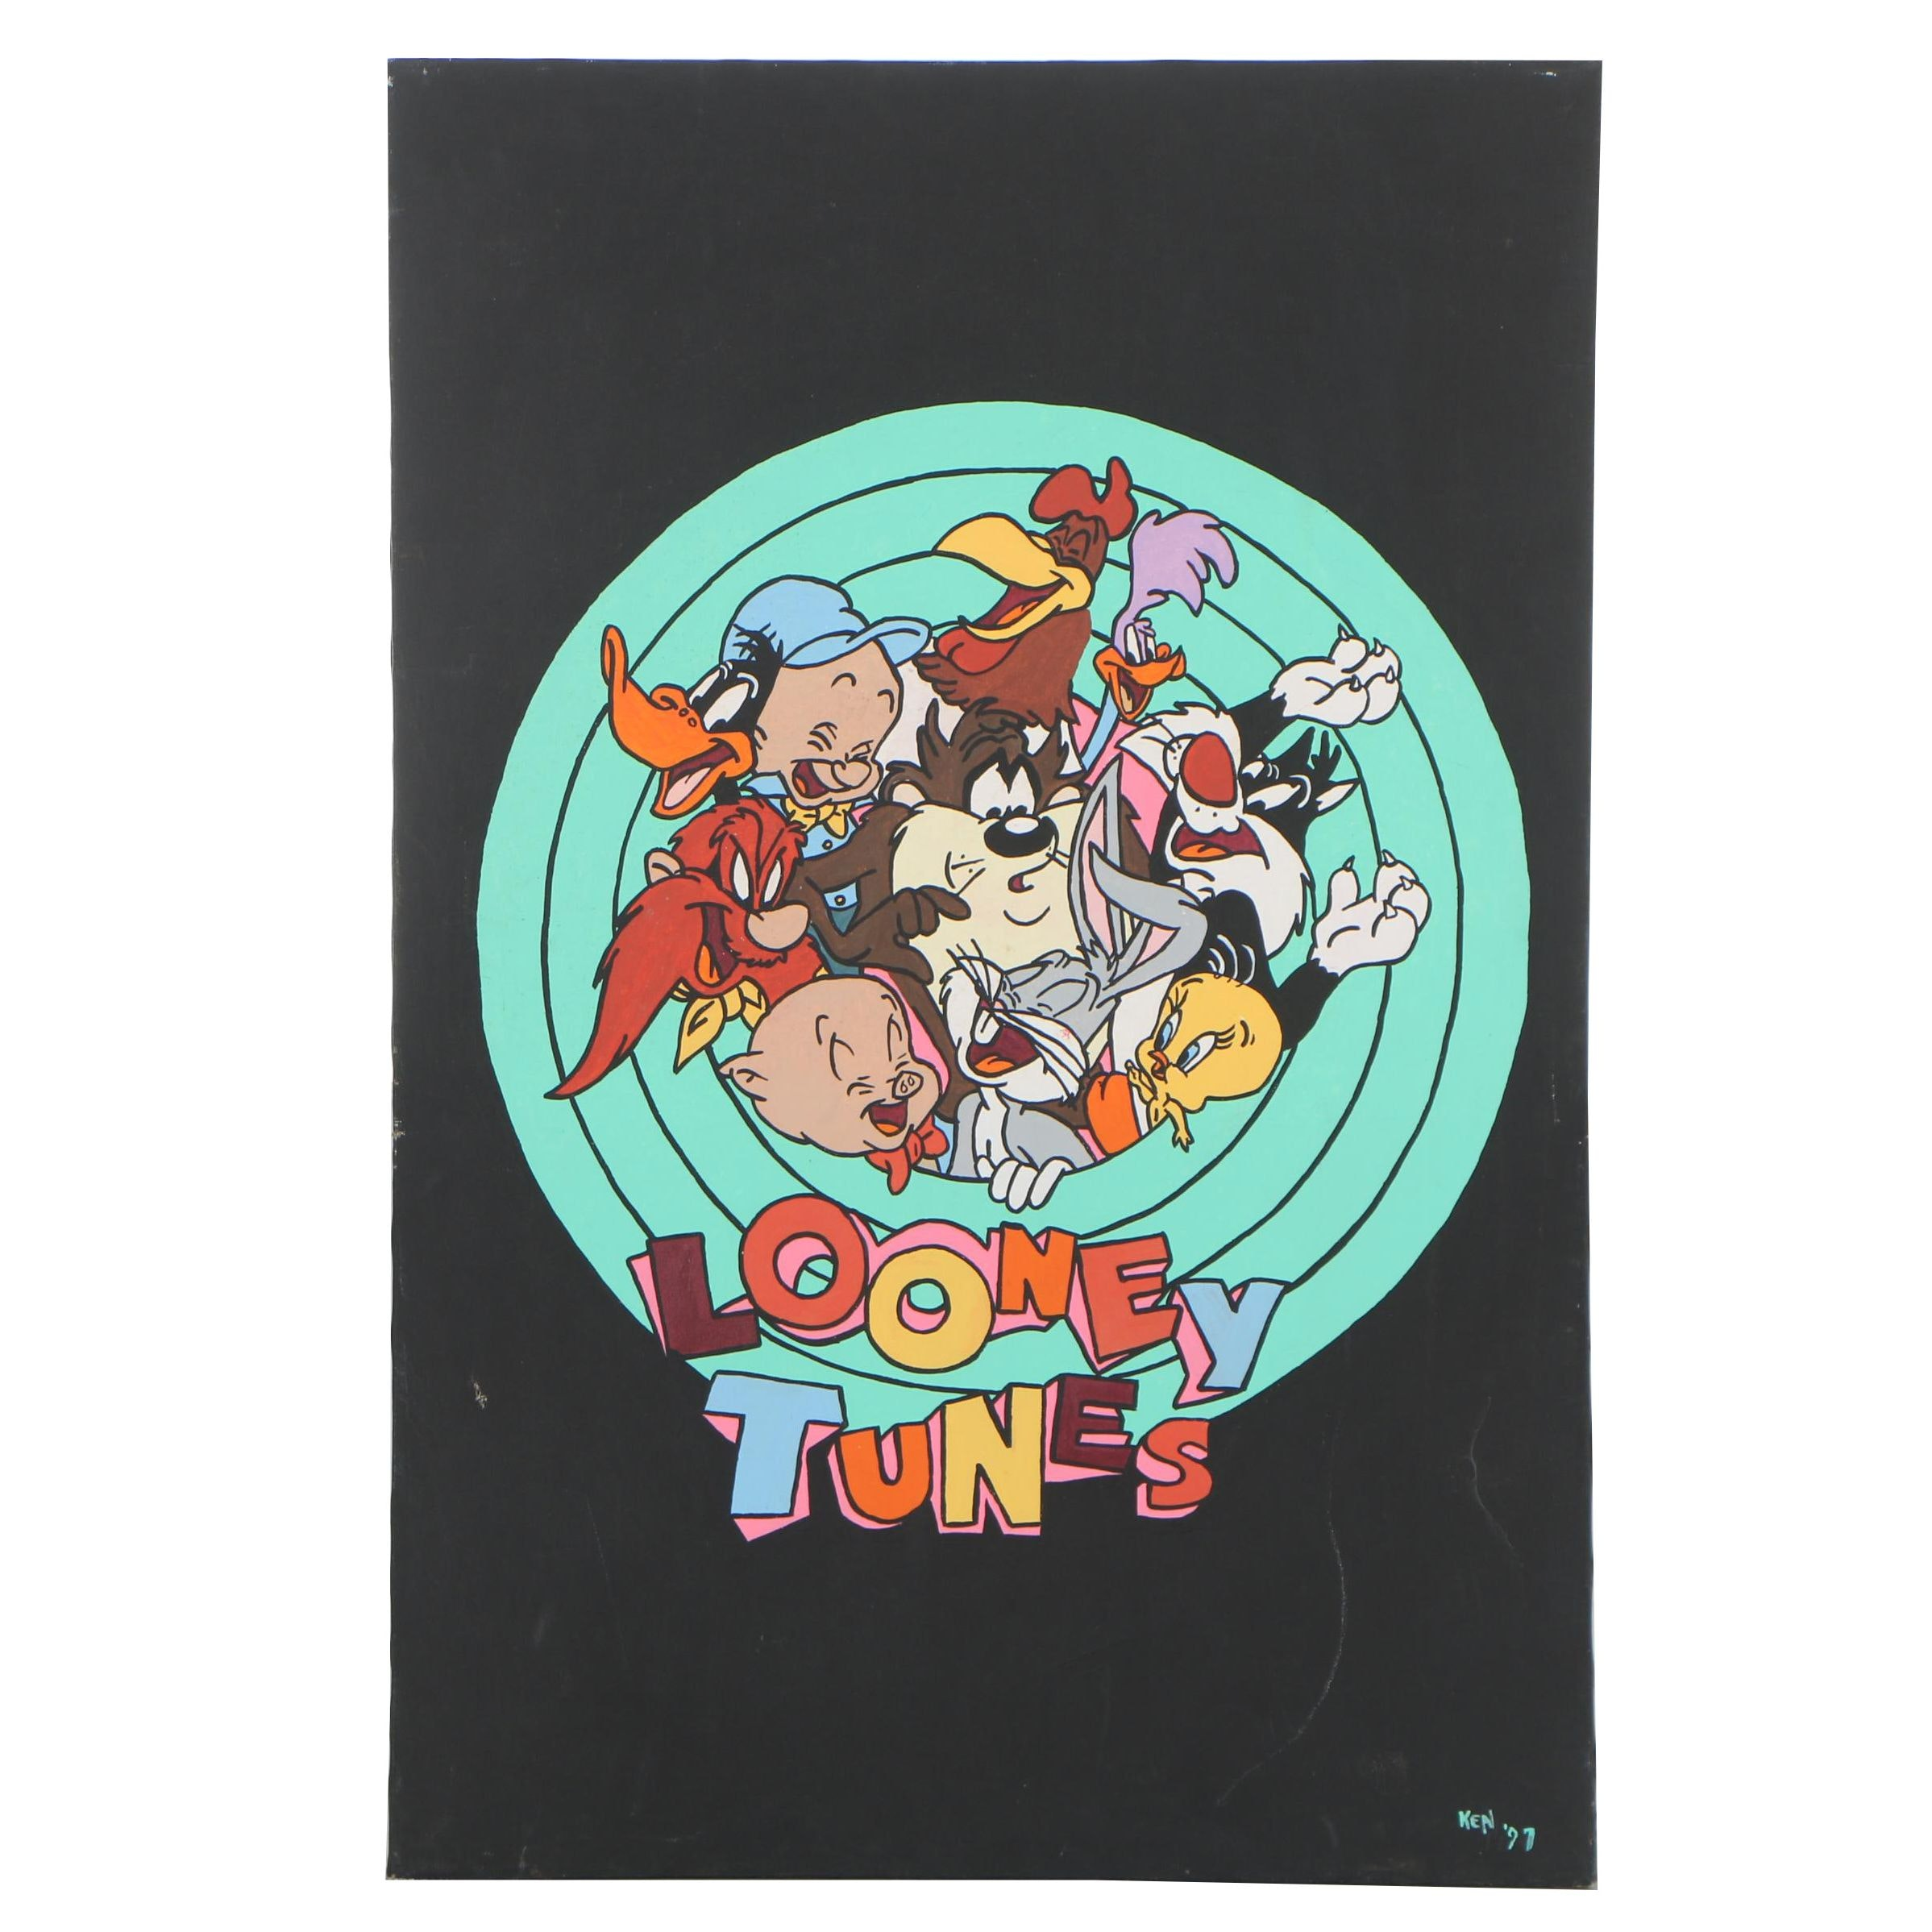 Copy Acrylic Painting after Looney Tunes Advertisement